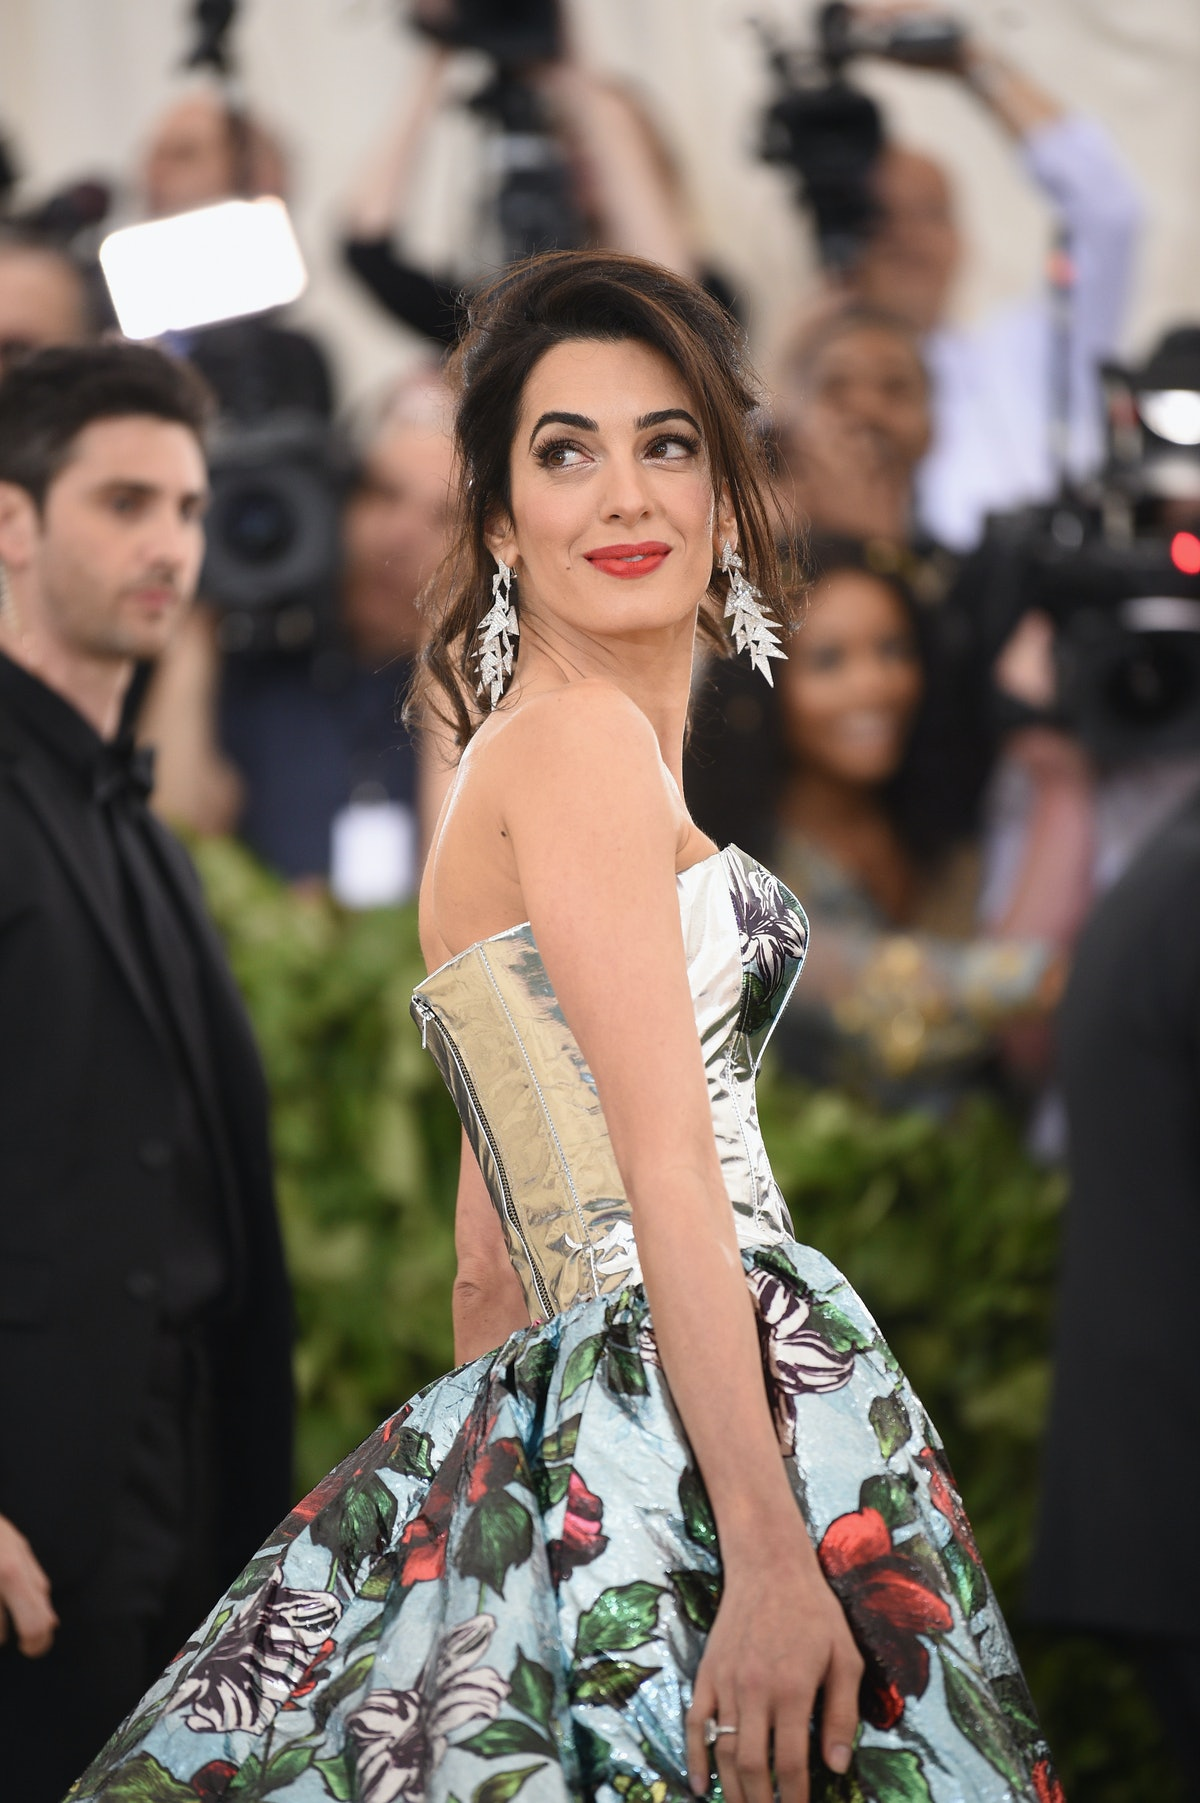 Amal Clooney's White Dress Will Convince You To Trade Out Your LBD